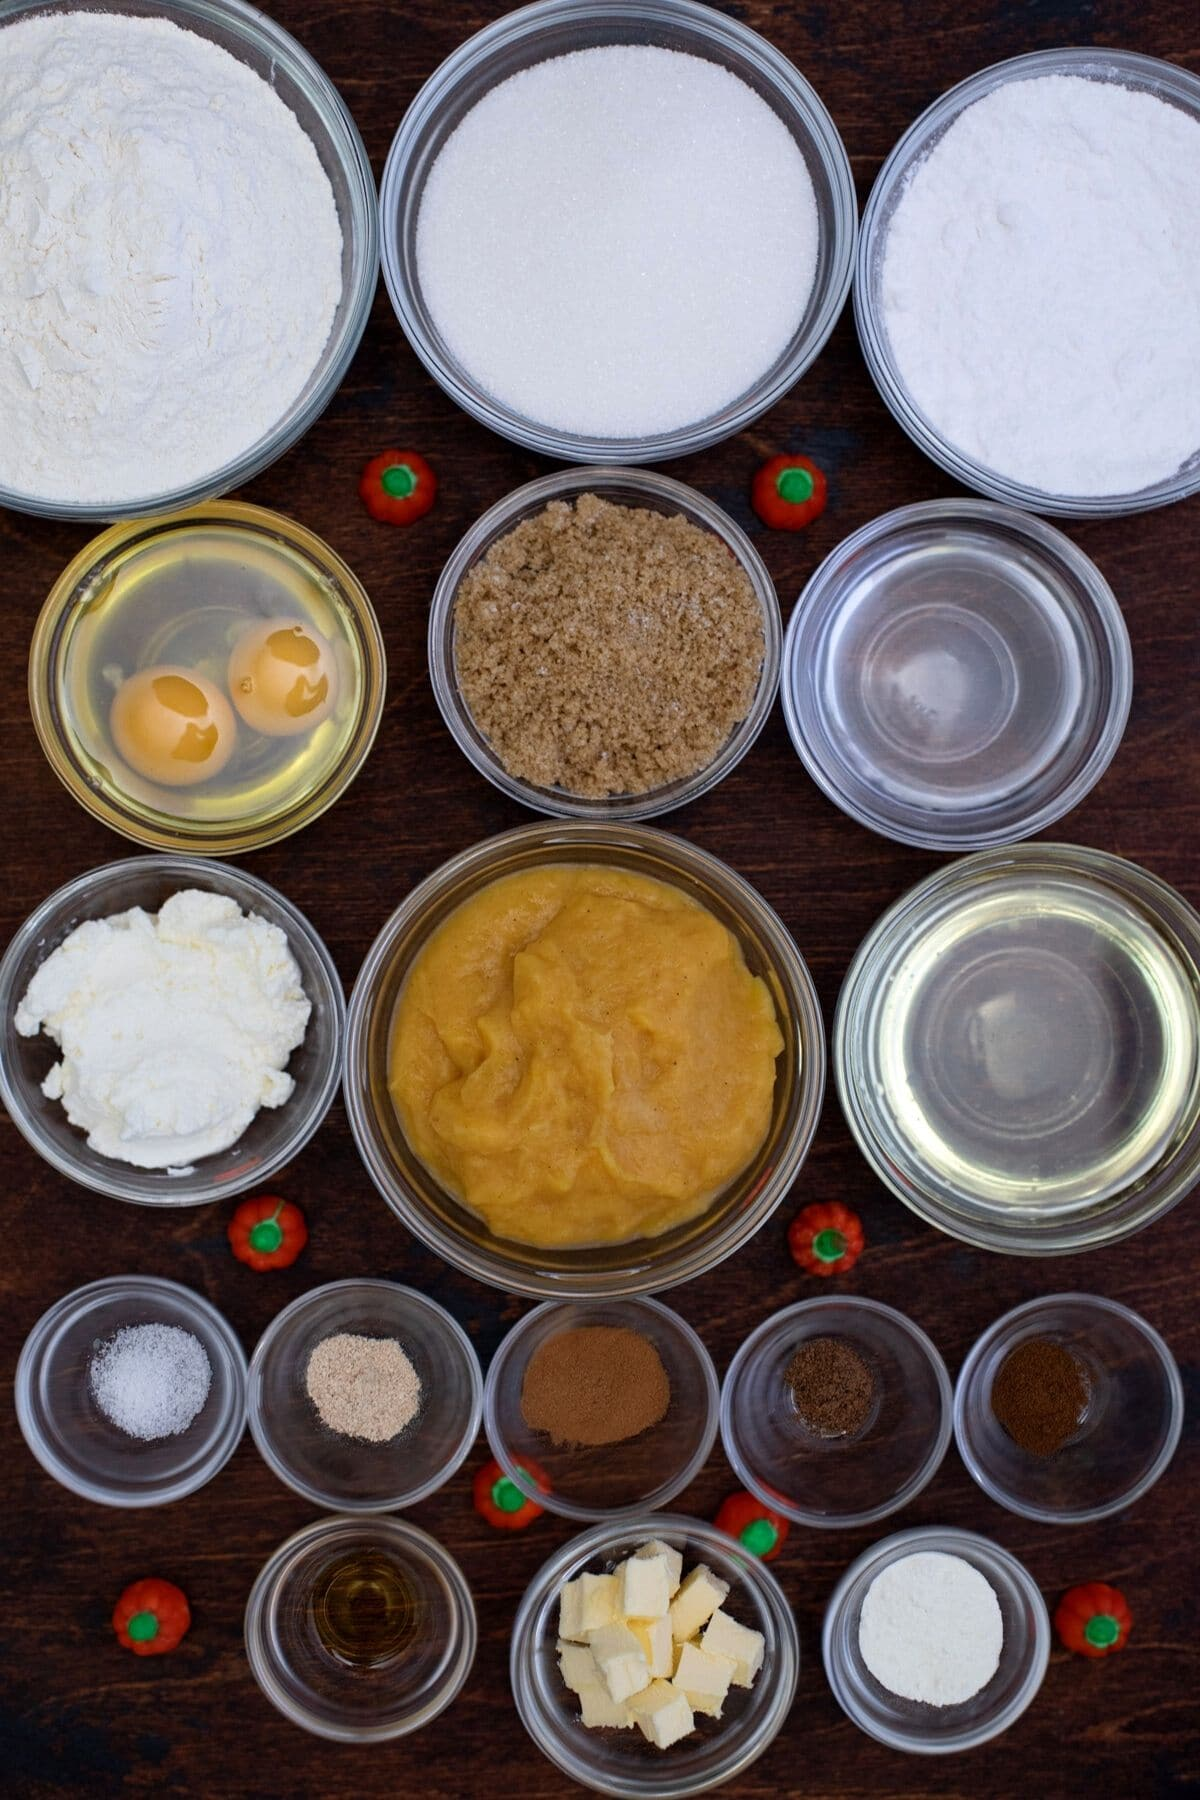 Ingredients for pumpkin bread in glass bowls on dark wood table